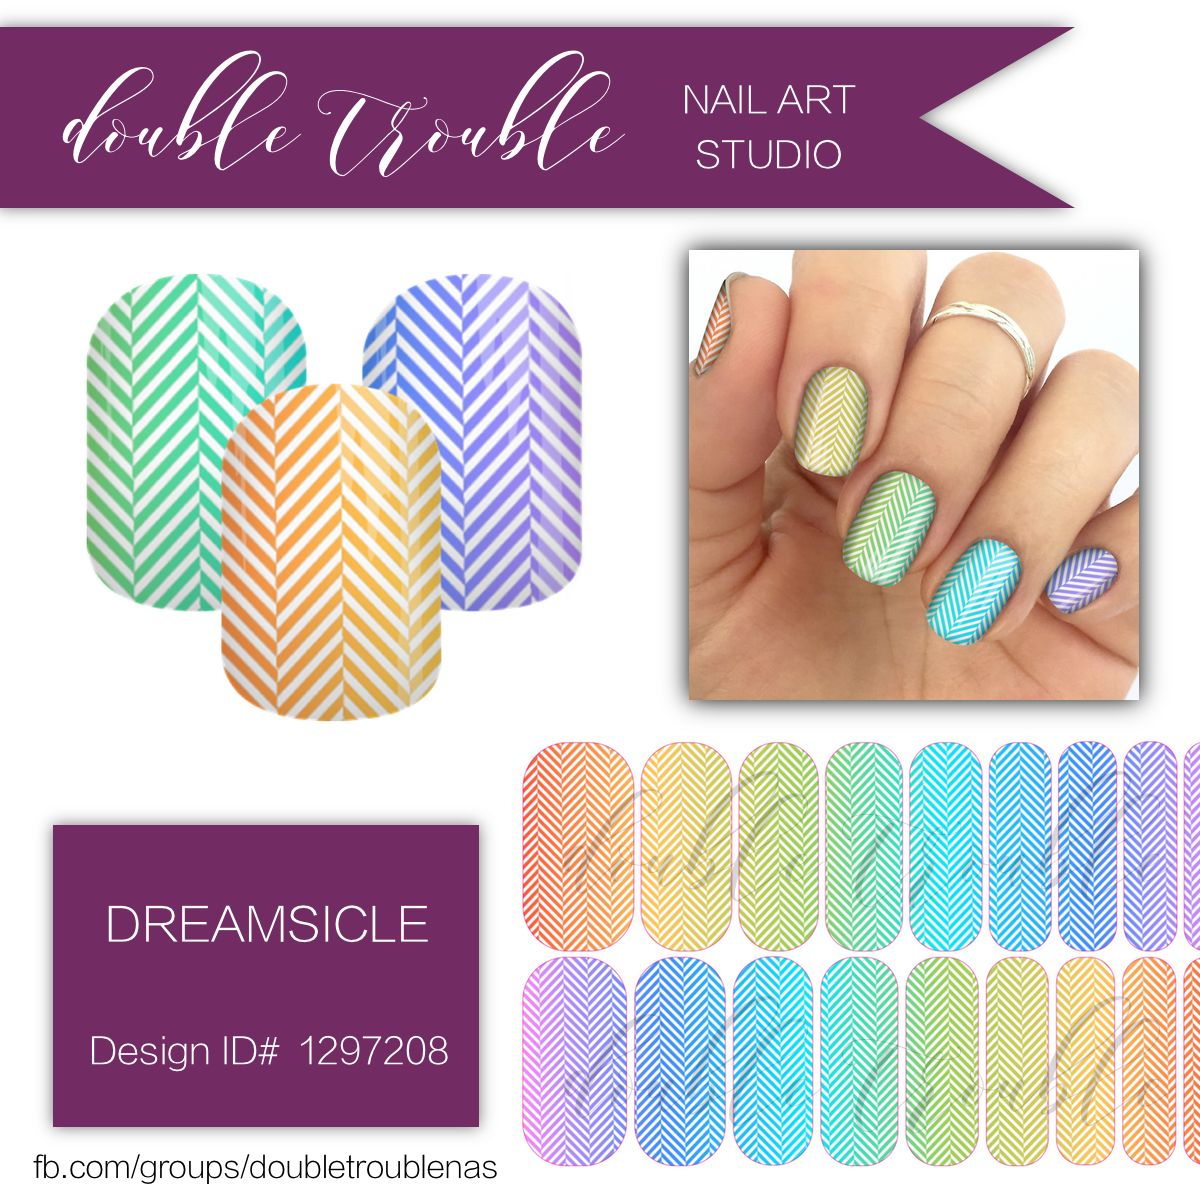 Dreamsicle Rainbow Multicolor Herringbone Nail Art Jamberry Nail